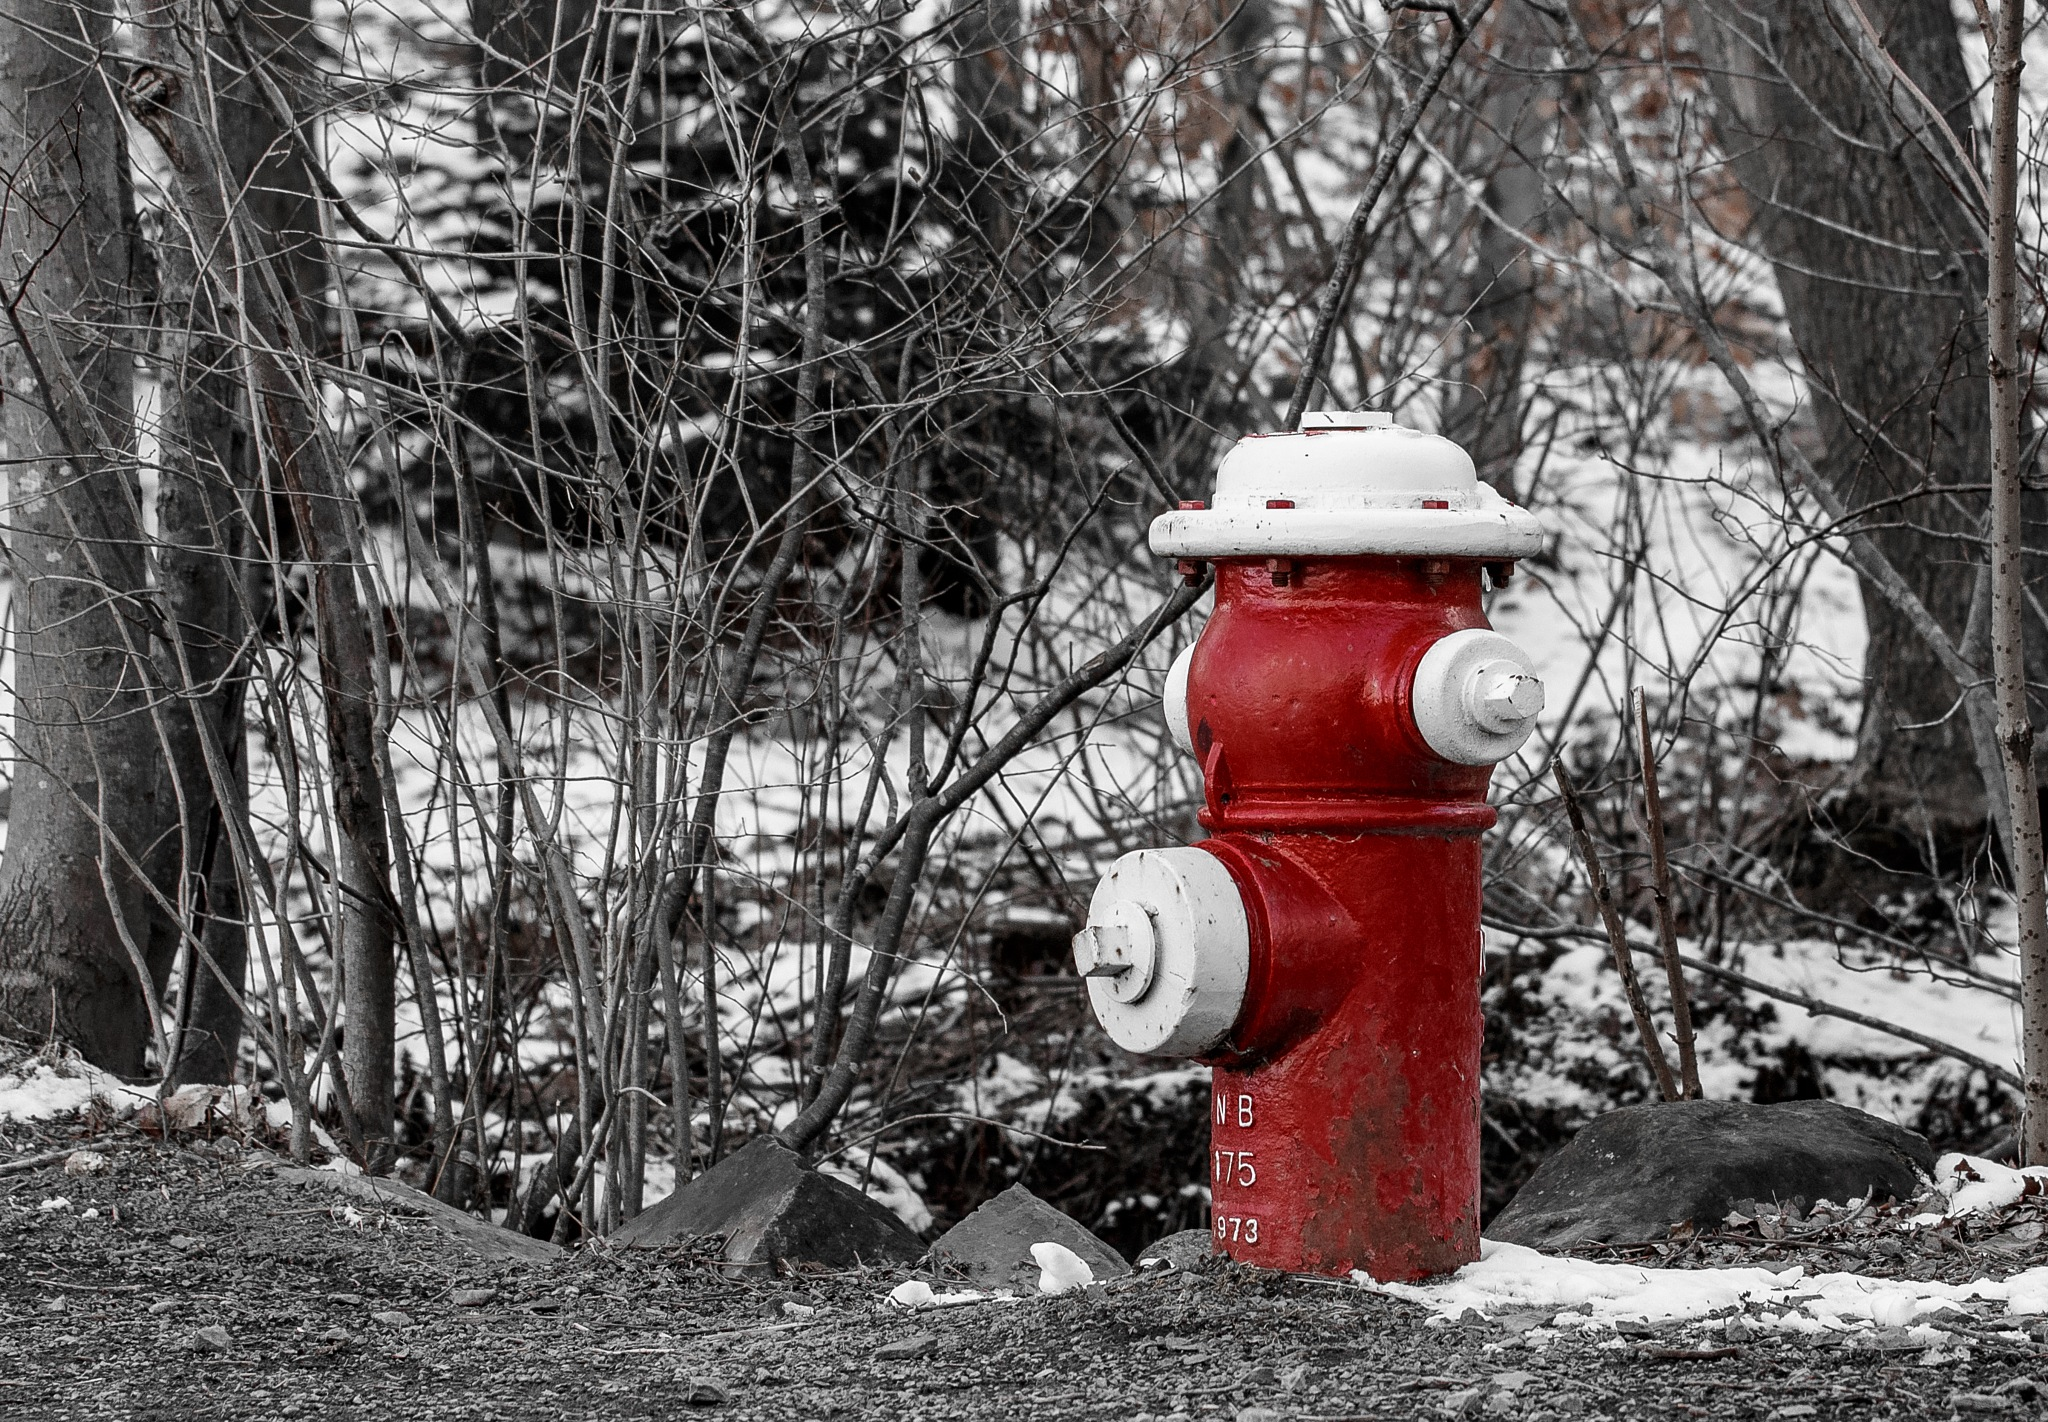 Fire Hydrant by Kevin Trudeau